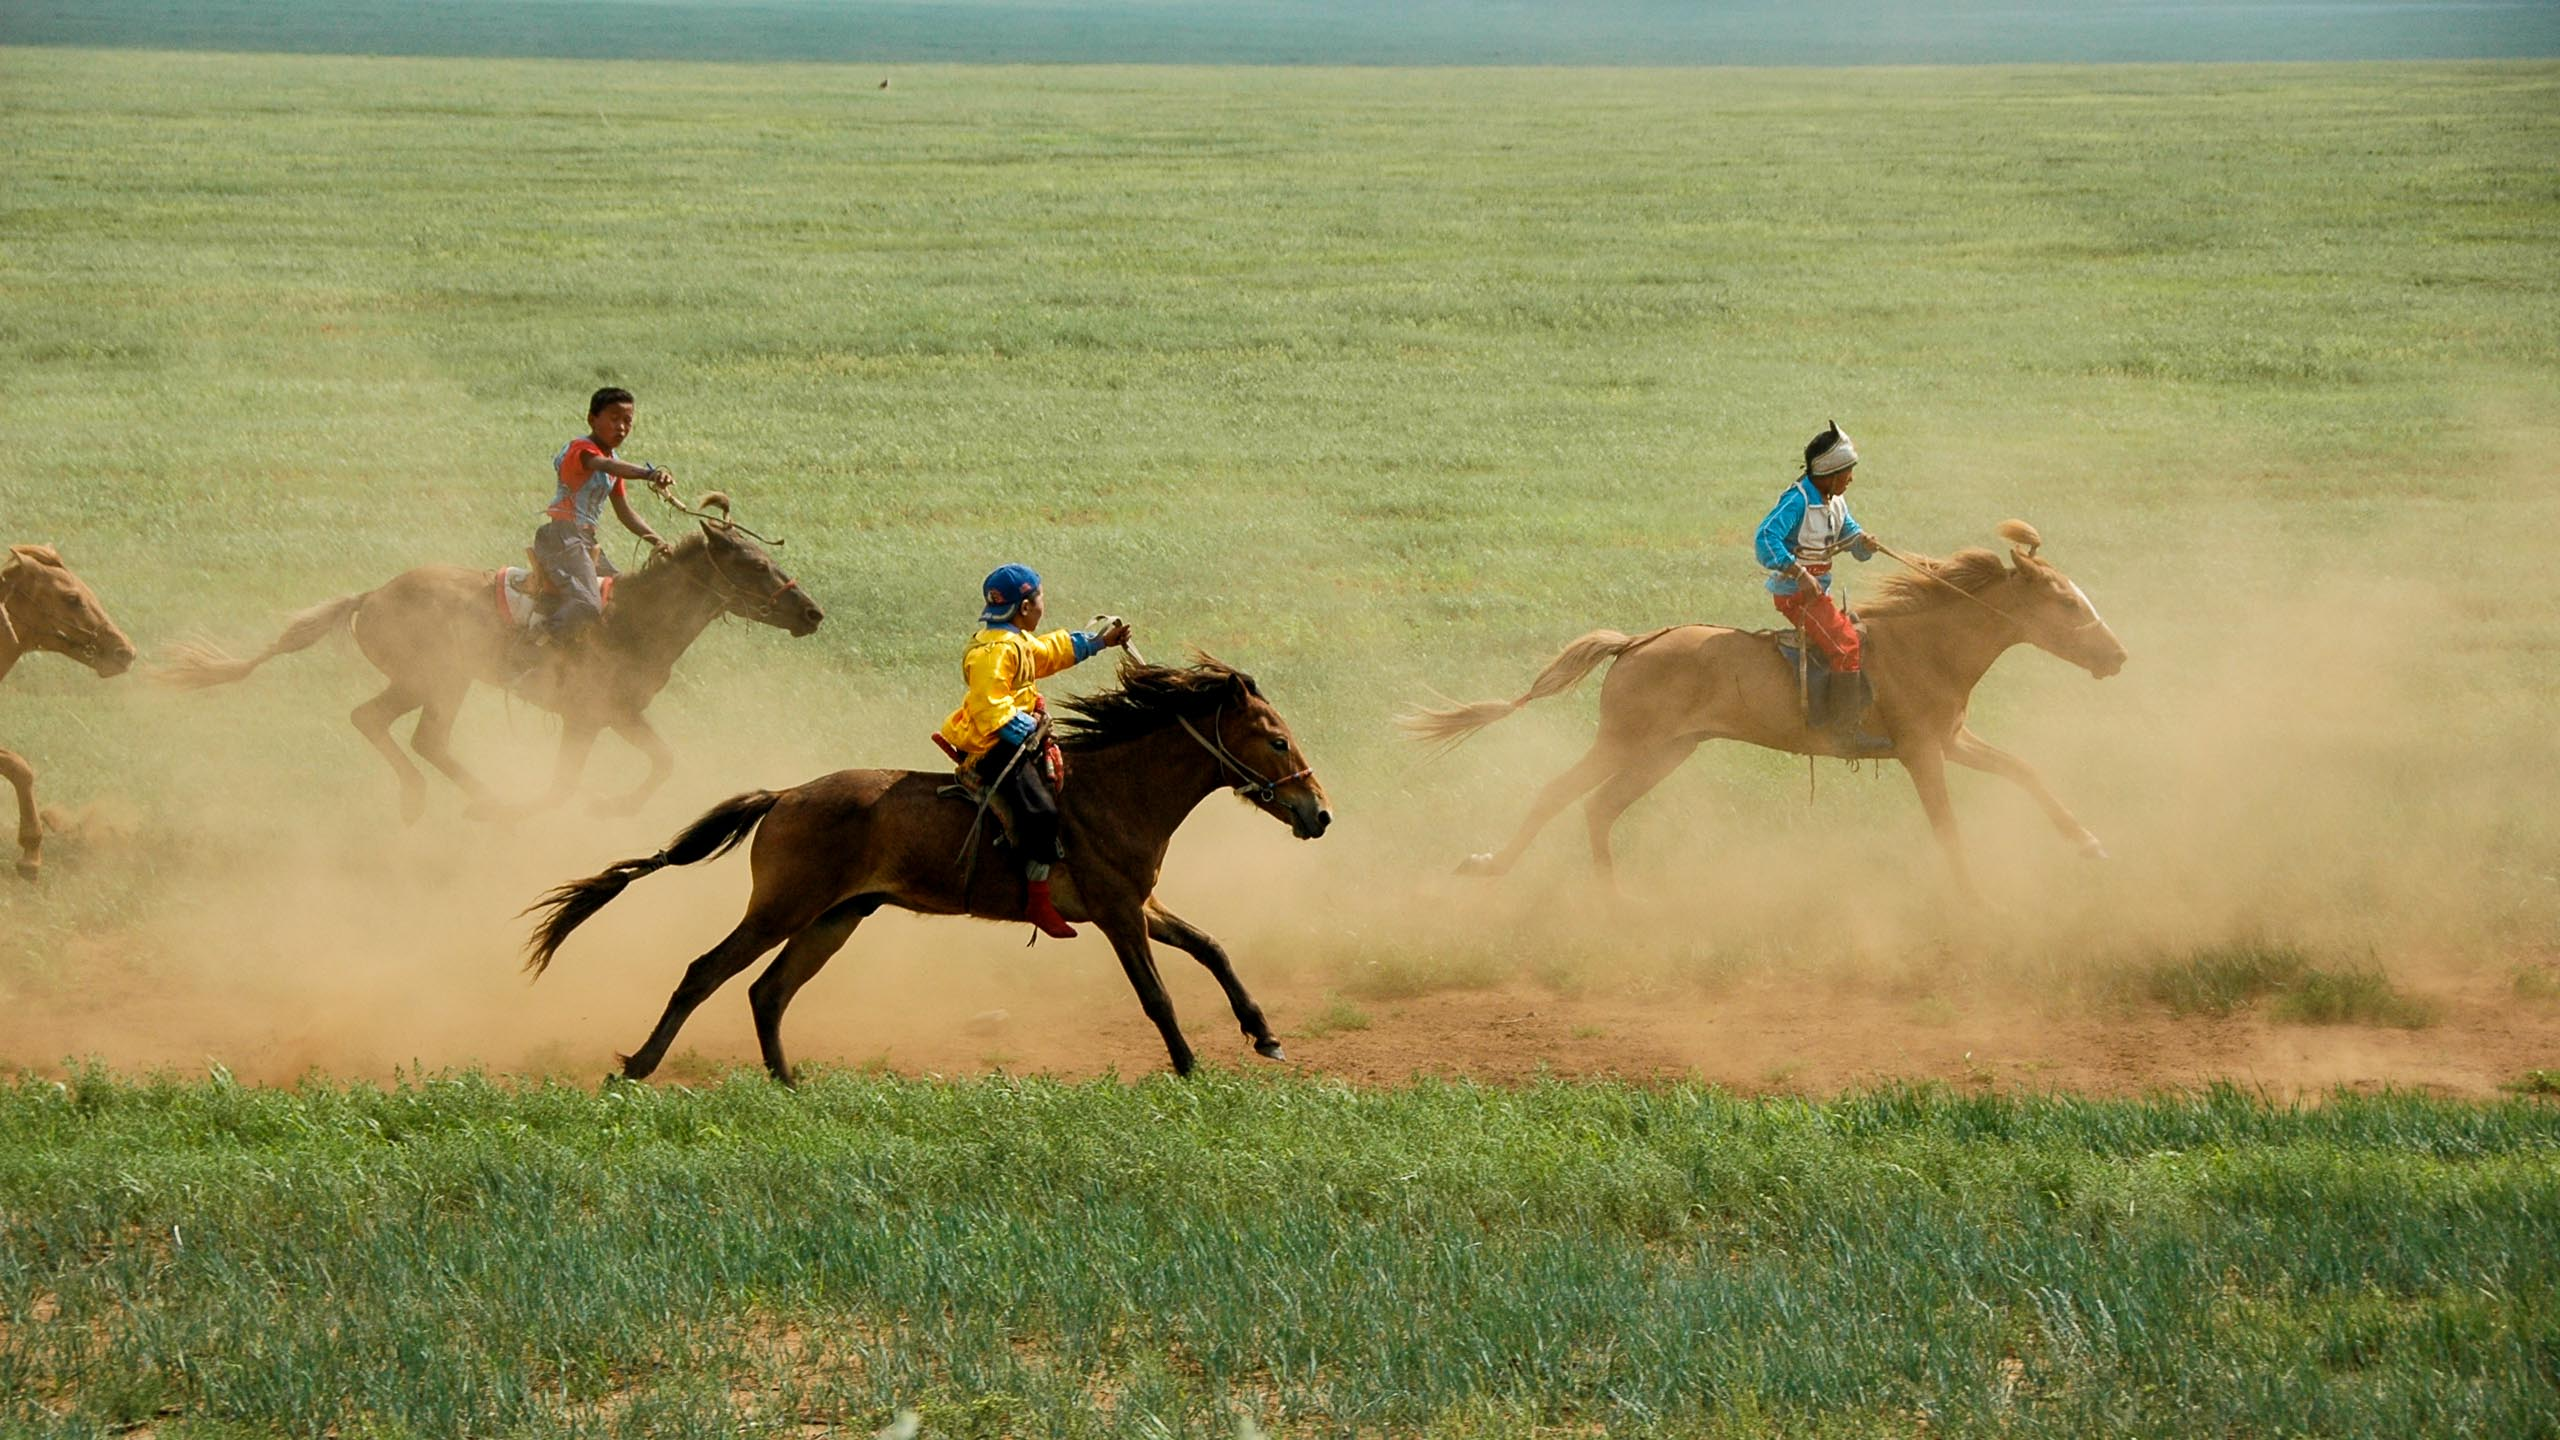 Mongolian people ride horses across plains